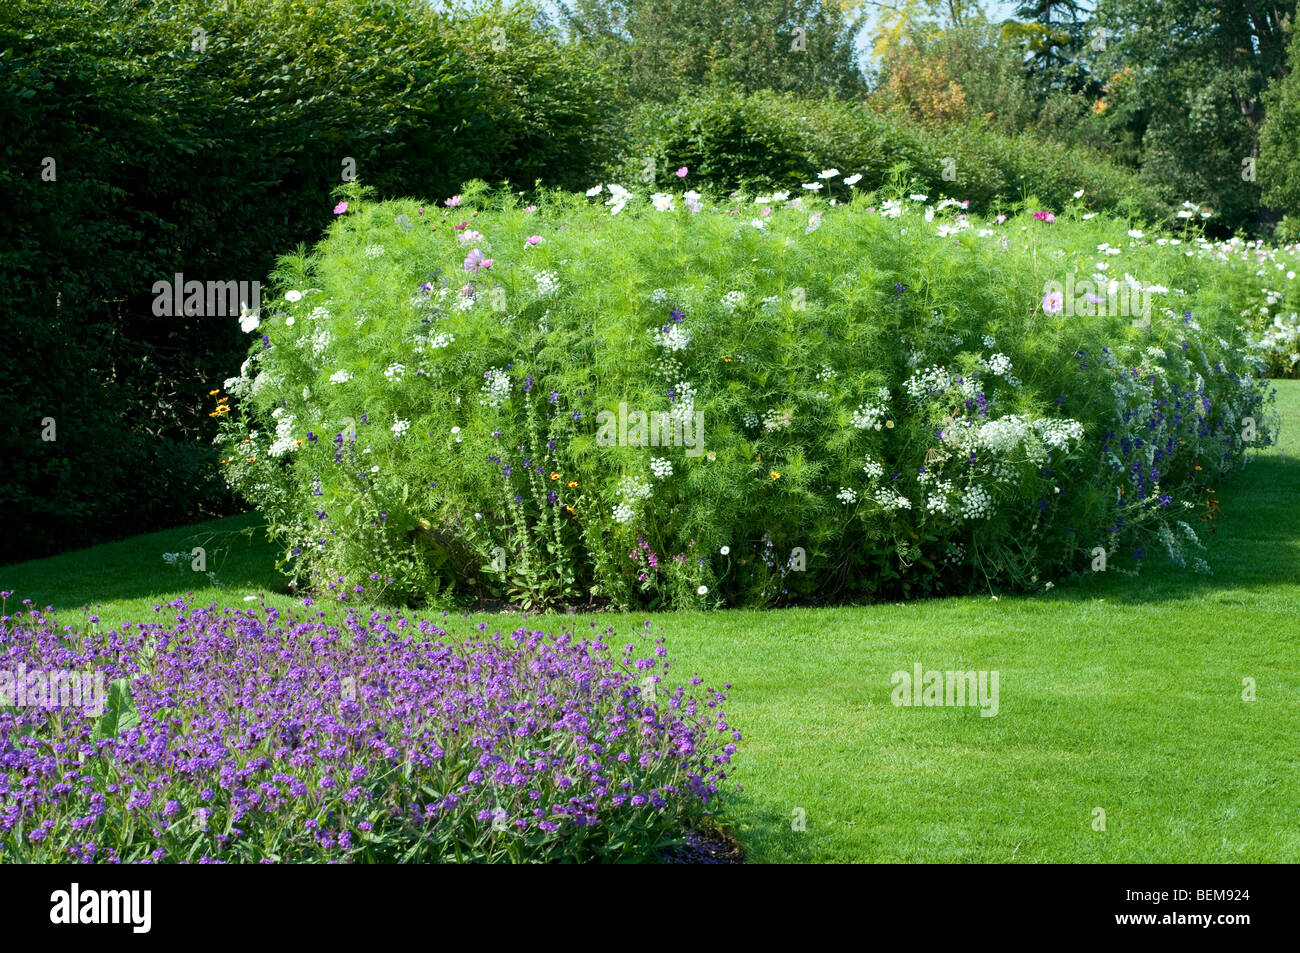 Verbenum in the foreground and Ammi majus and Cosmos bipinnatus in the background Stock Photo